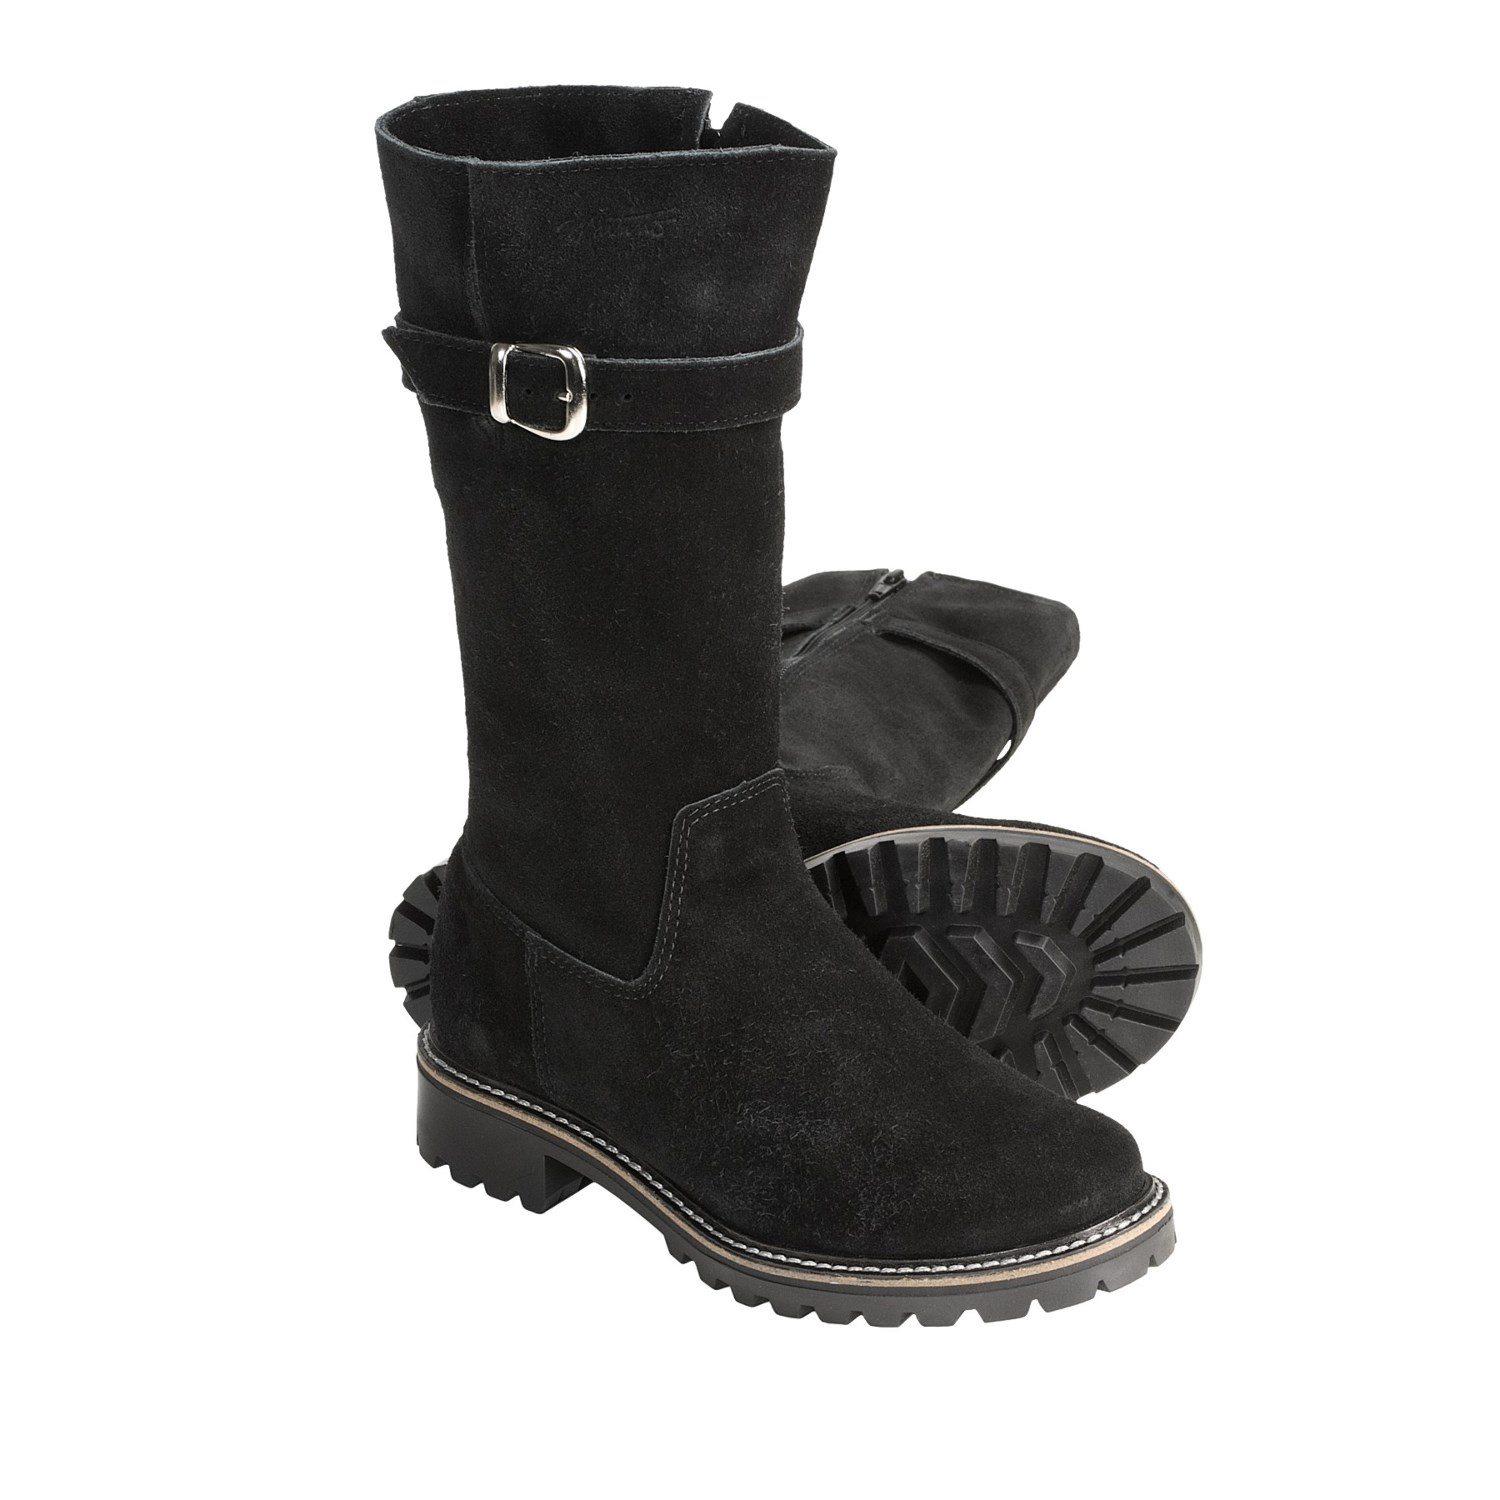 Tall Boots For Women 9sZFPjrf